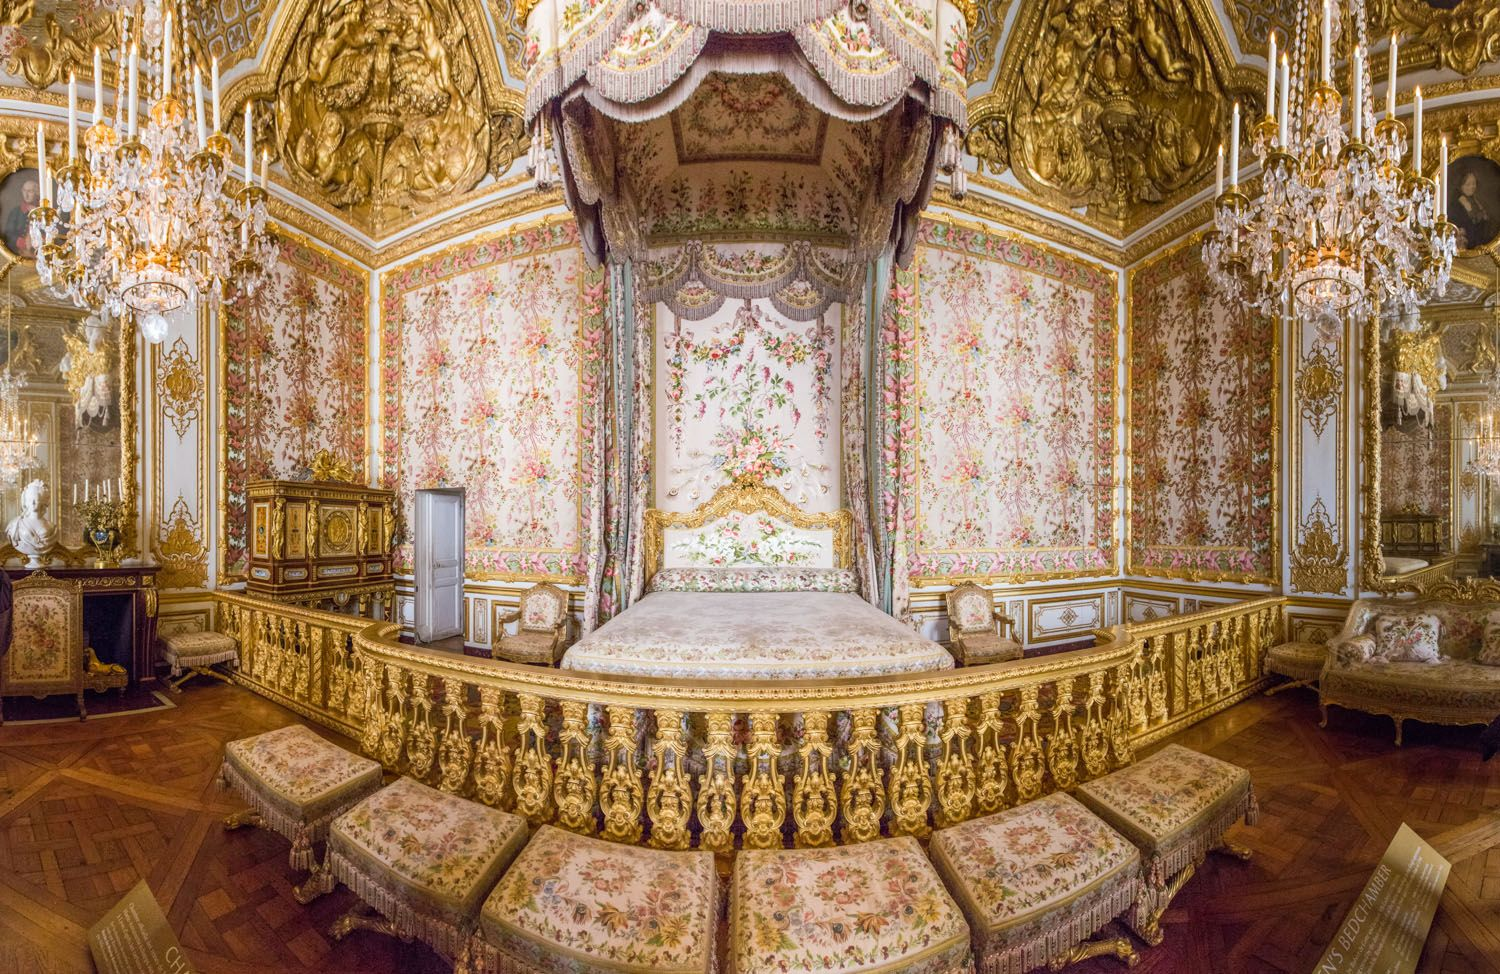 Queen Bedroom Beds Palace Of Versailles Hotel Marie Antoinette